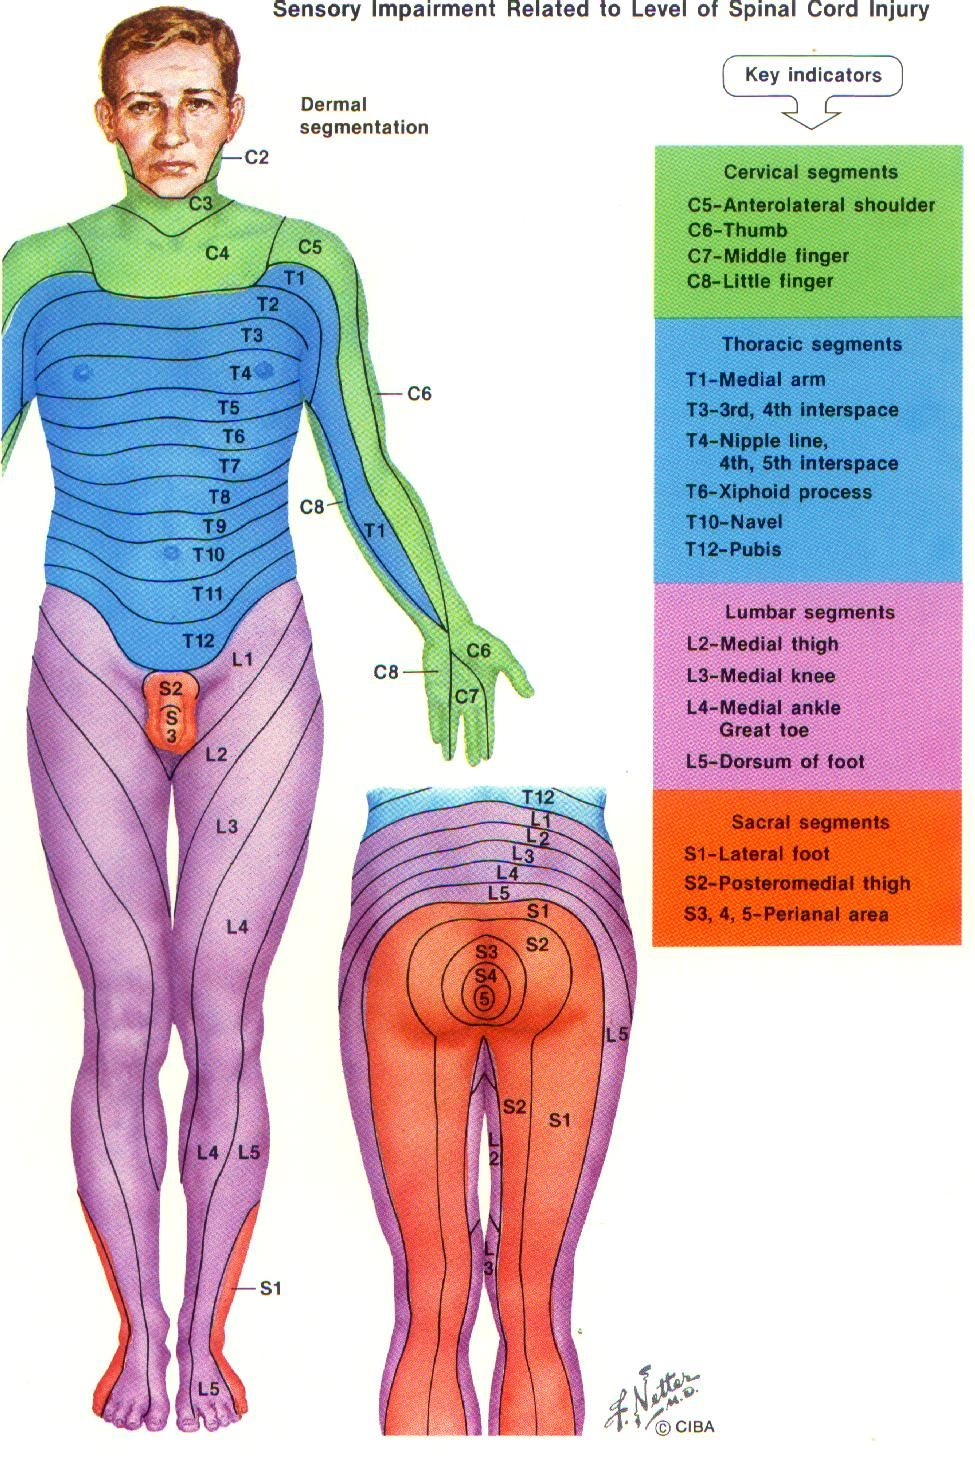 hight resolution of dermatome chart with symptoms more pain first thing in the morning or after sitting a long time is